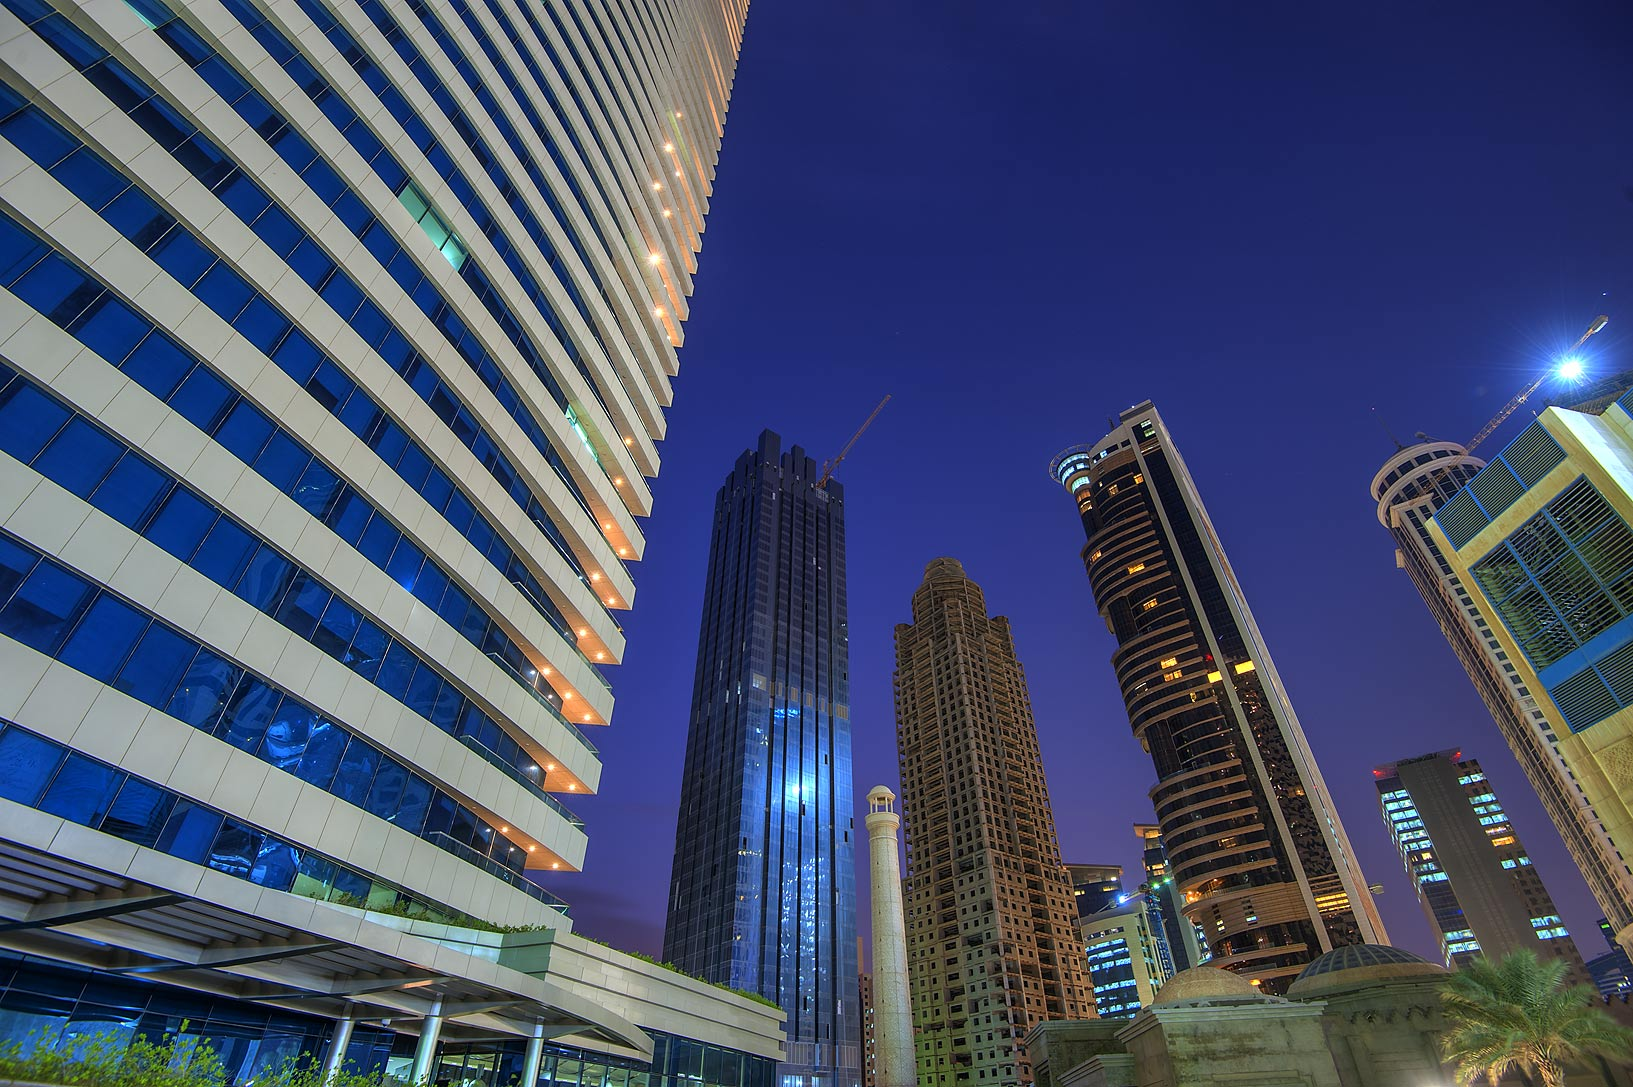 Foot of 44 West Bay Tower in West Bay. Doha, Qatar